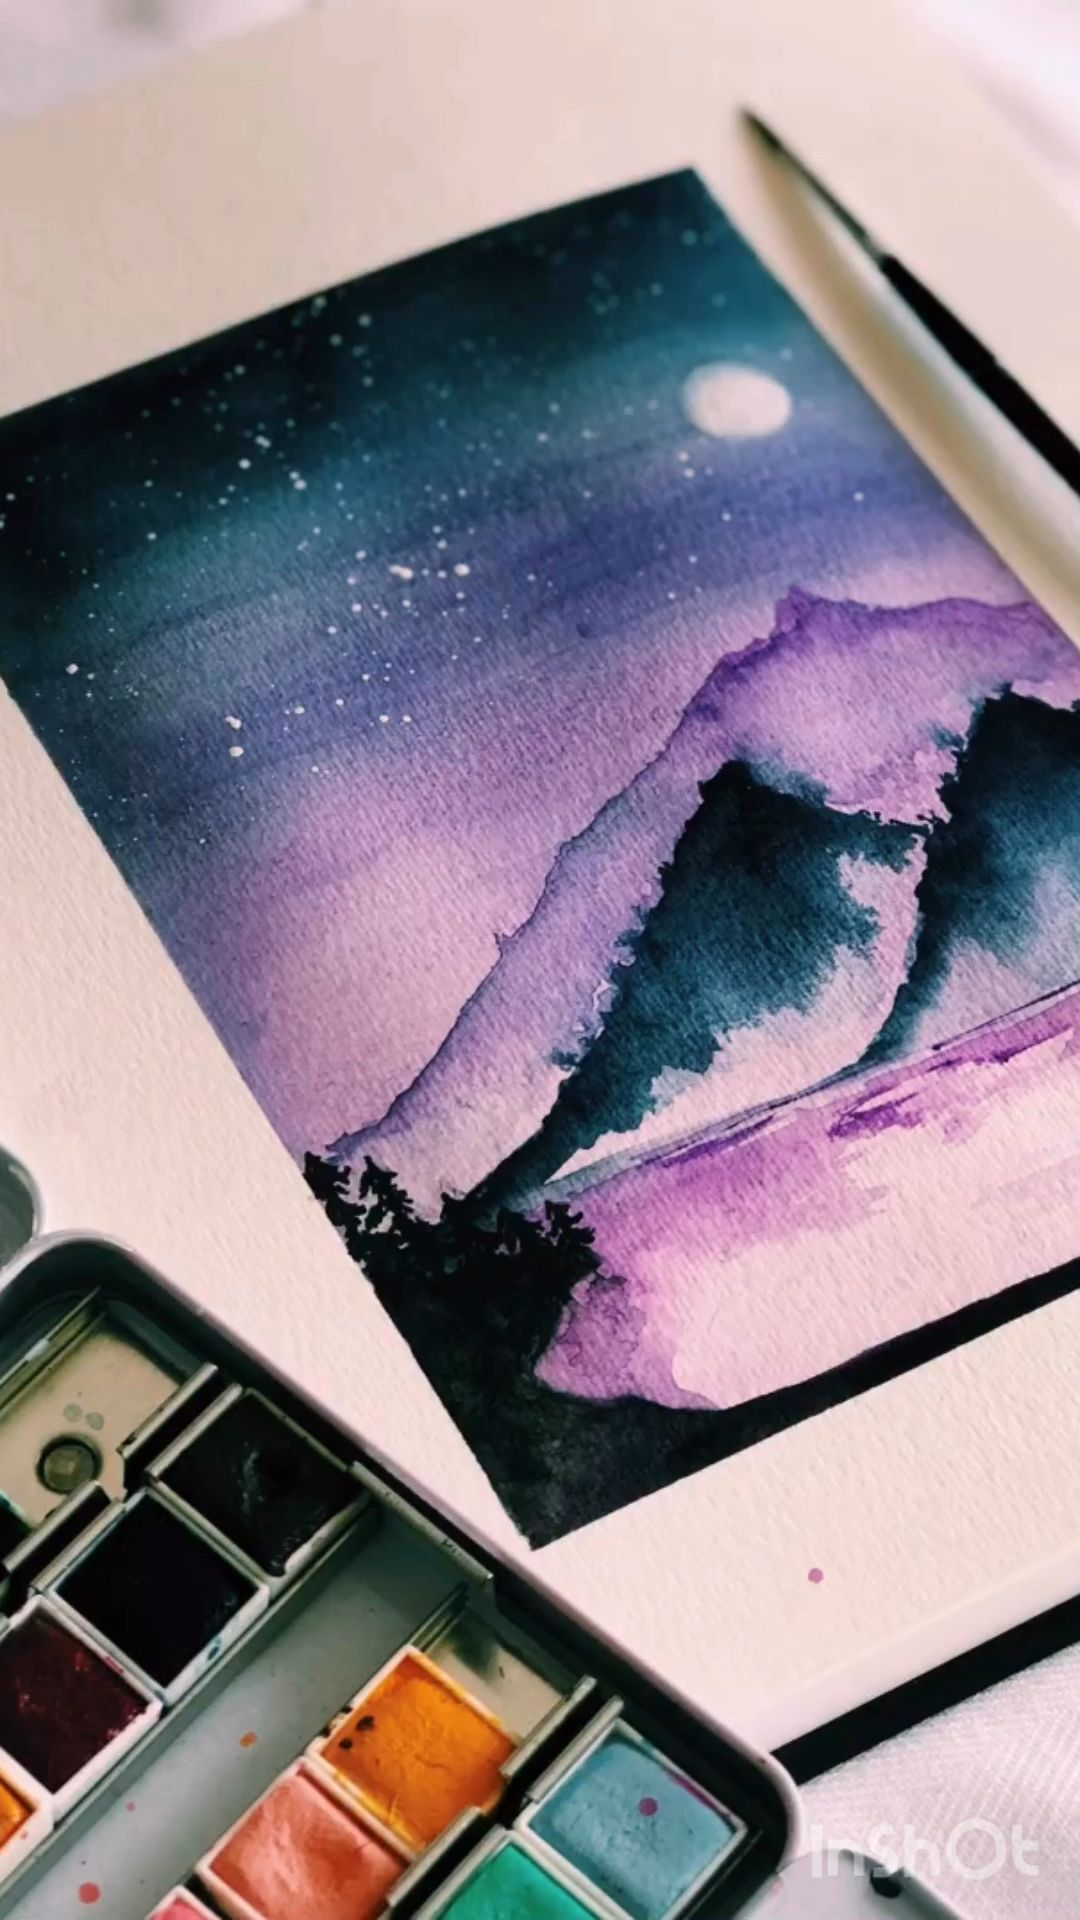 Watercolour mountain scene and night sky